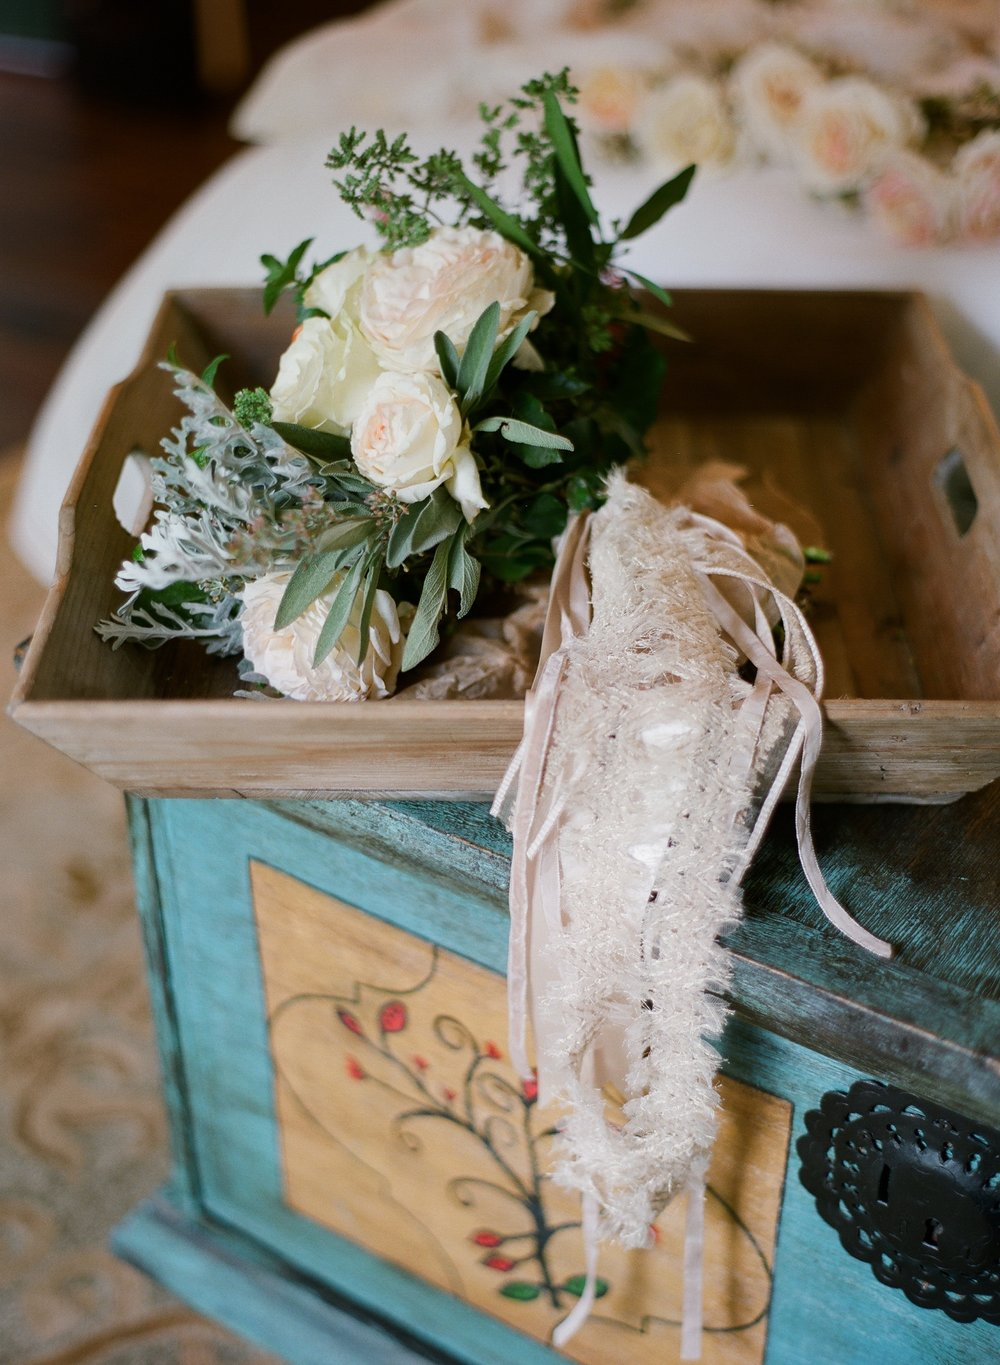 santabarbarawedding.com | Photo: Megan Sorel | Citrus Wedding Ideas at the Santa Barbara Four Seasons